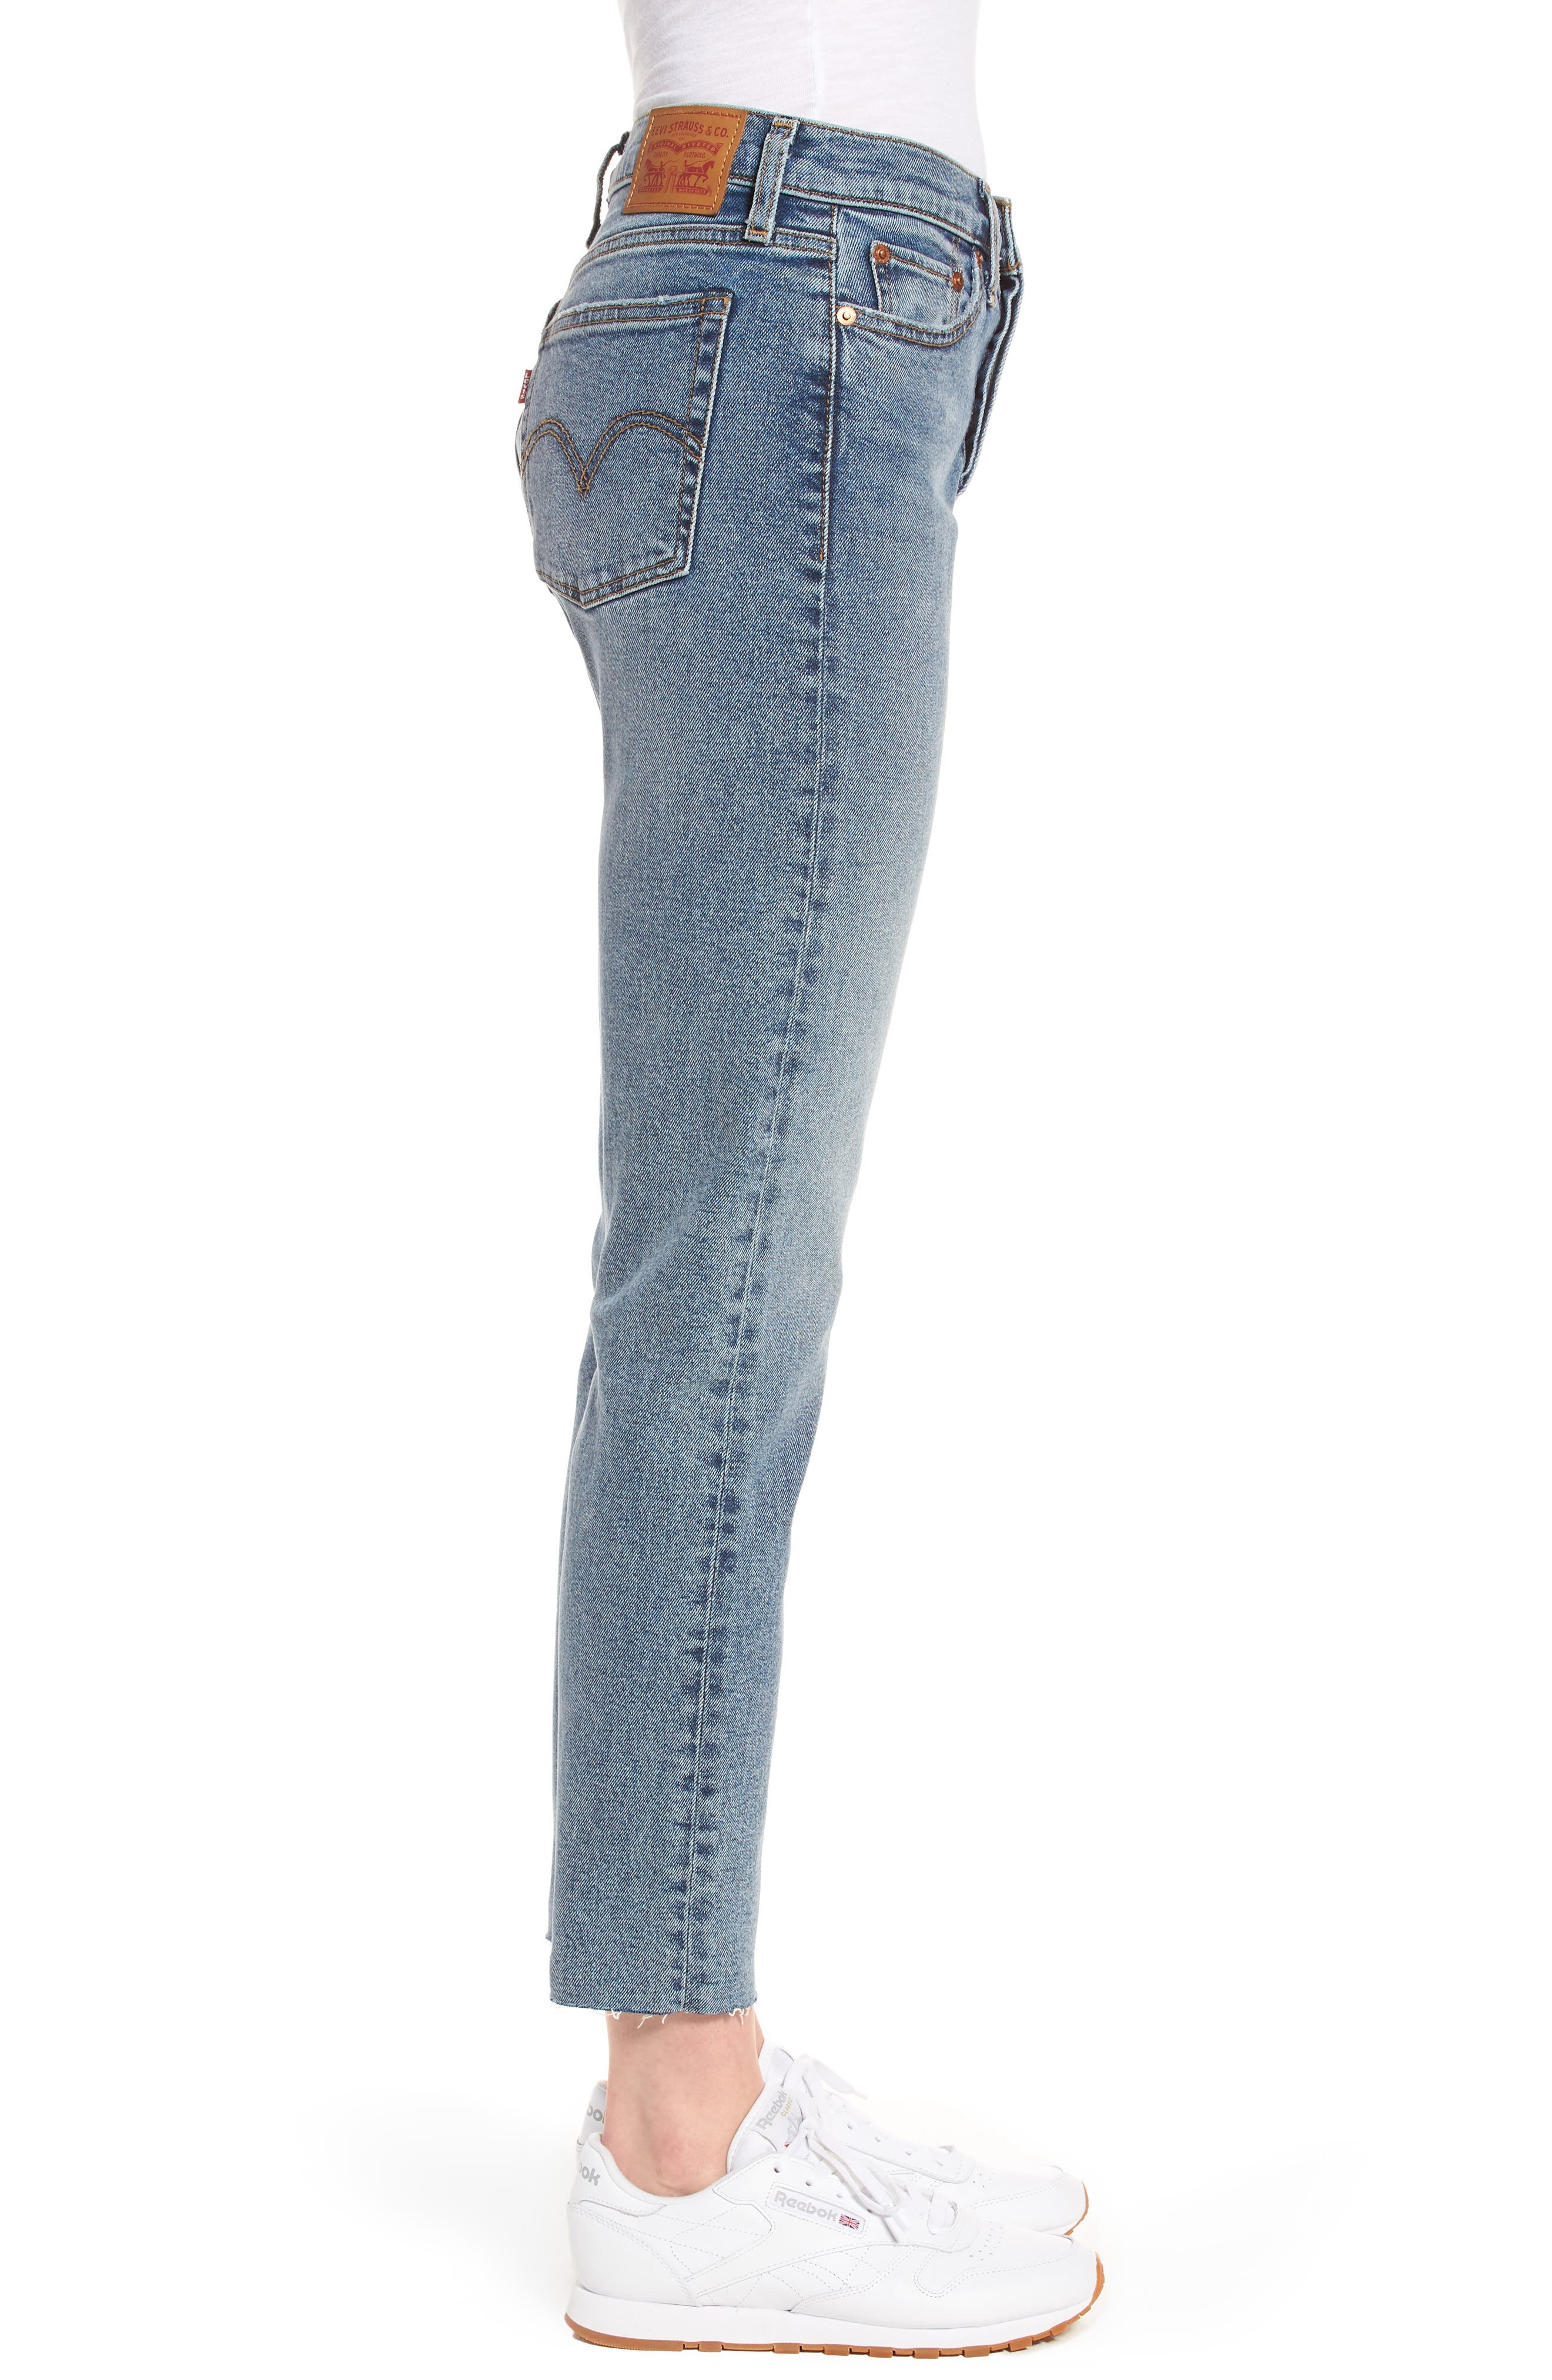 Wedgie Icon Fit High Waist Crop Jeans,                             Alternate thumbnail 3, color,                             Twisted Fate